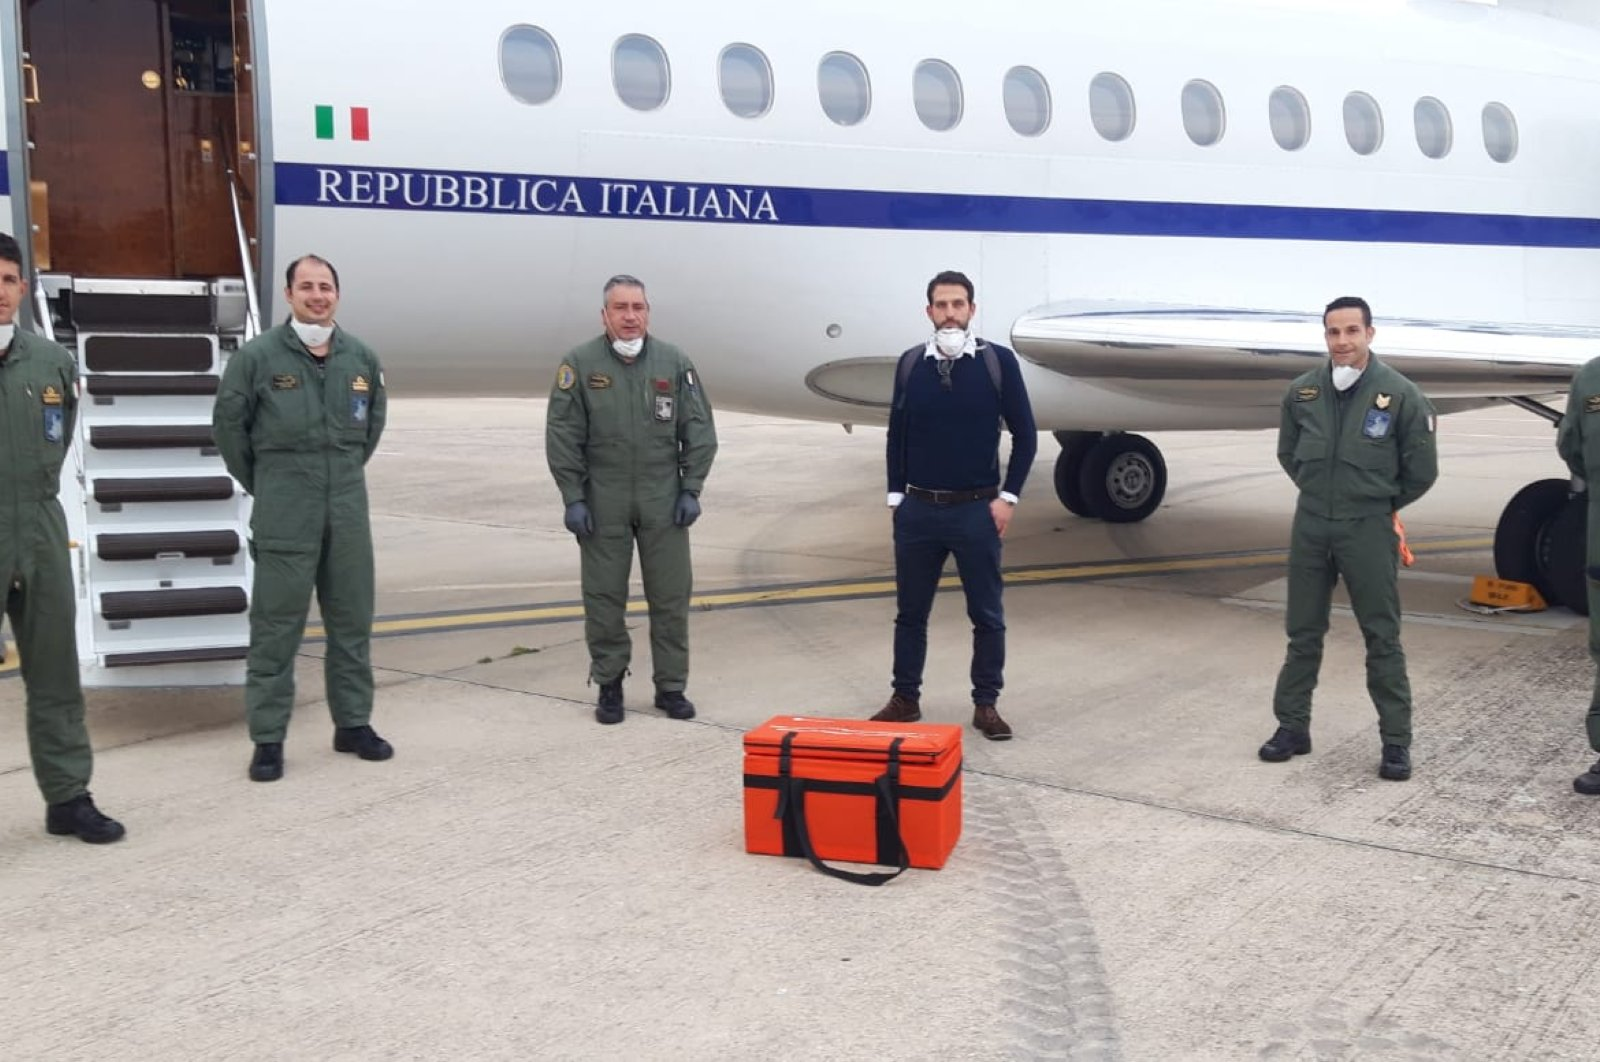 The Italian team poses with the container carrying the stem cells before departing from Atatürk Airport, Istanbul, Turkey, March 31, 2020. (AA Photo)